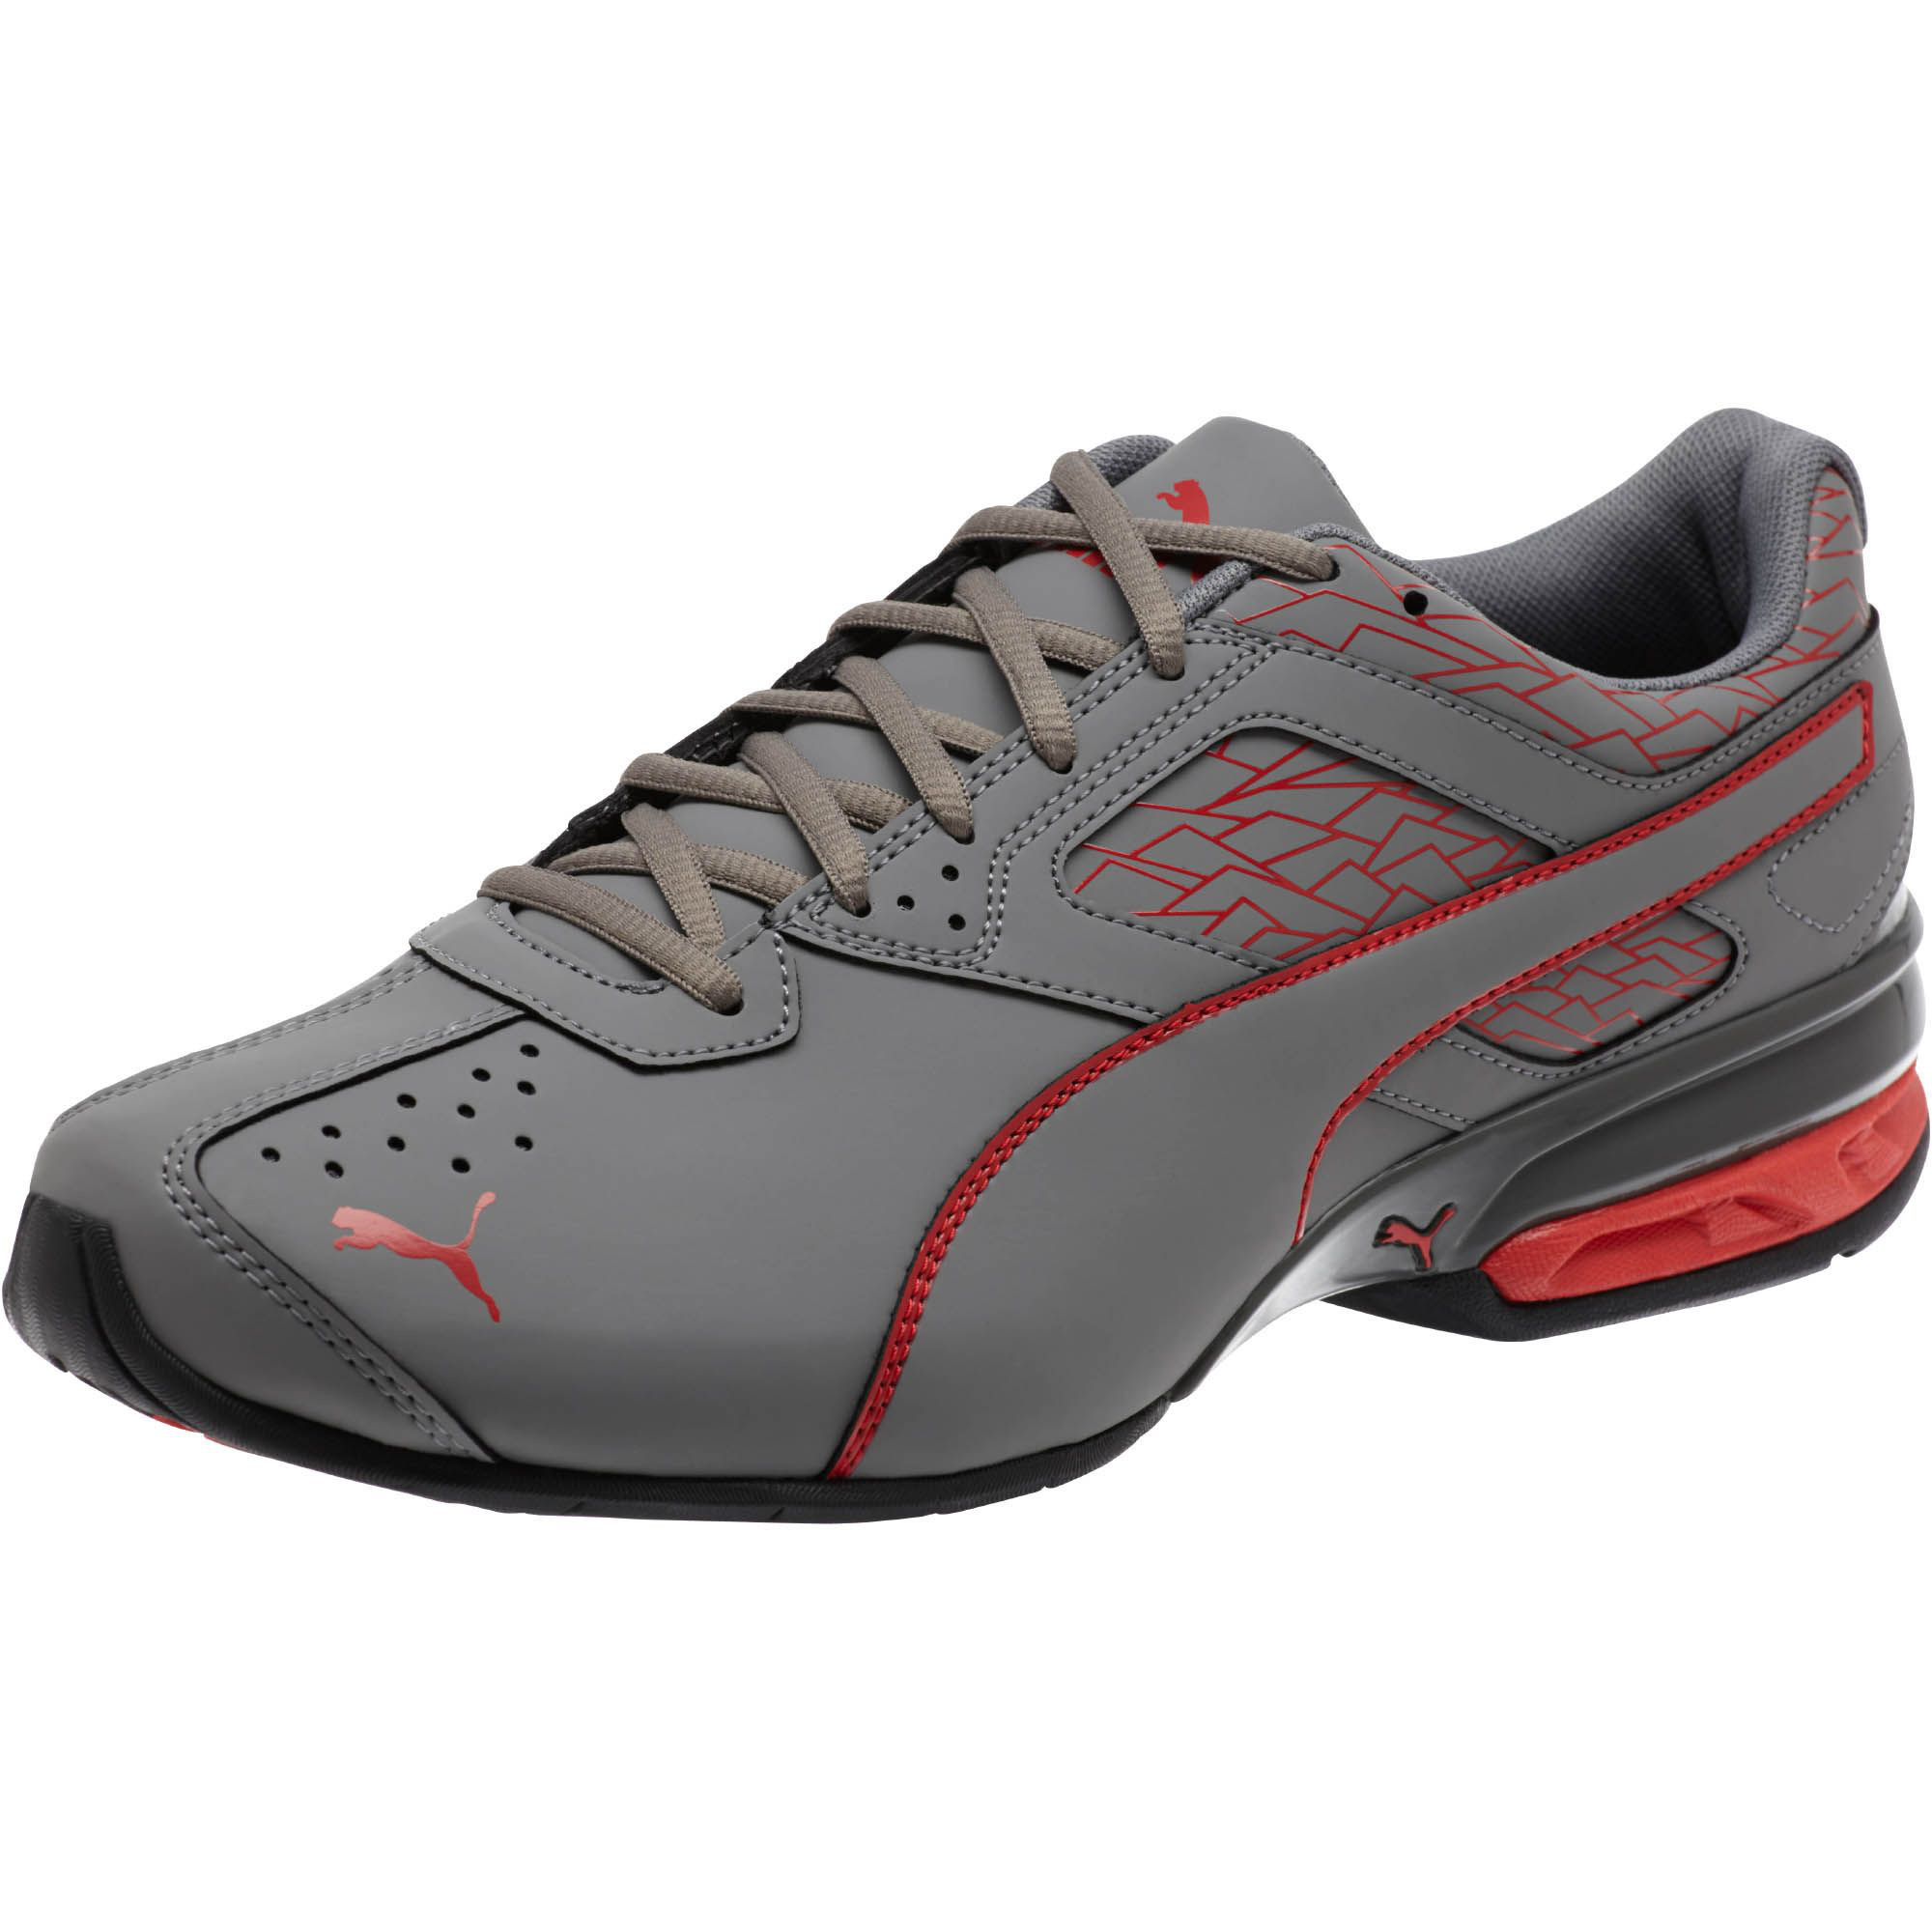 PUMA-Tazon-6-Fracture-FM-Men-039-s-Sneakers-Men-Shoe-Running thumbnail 22